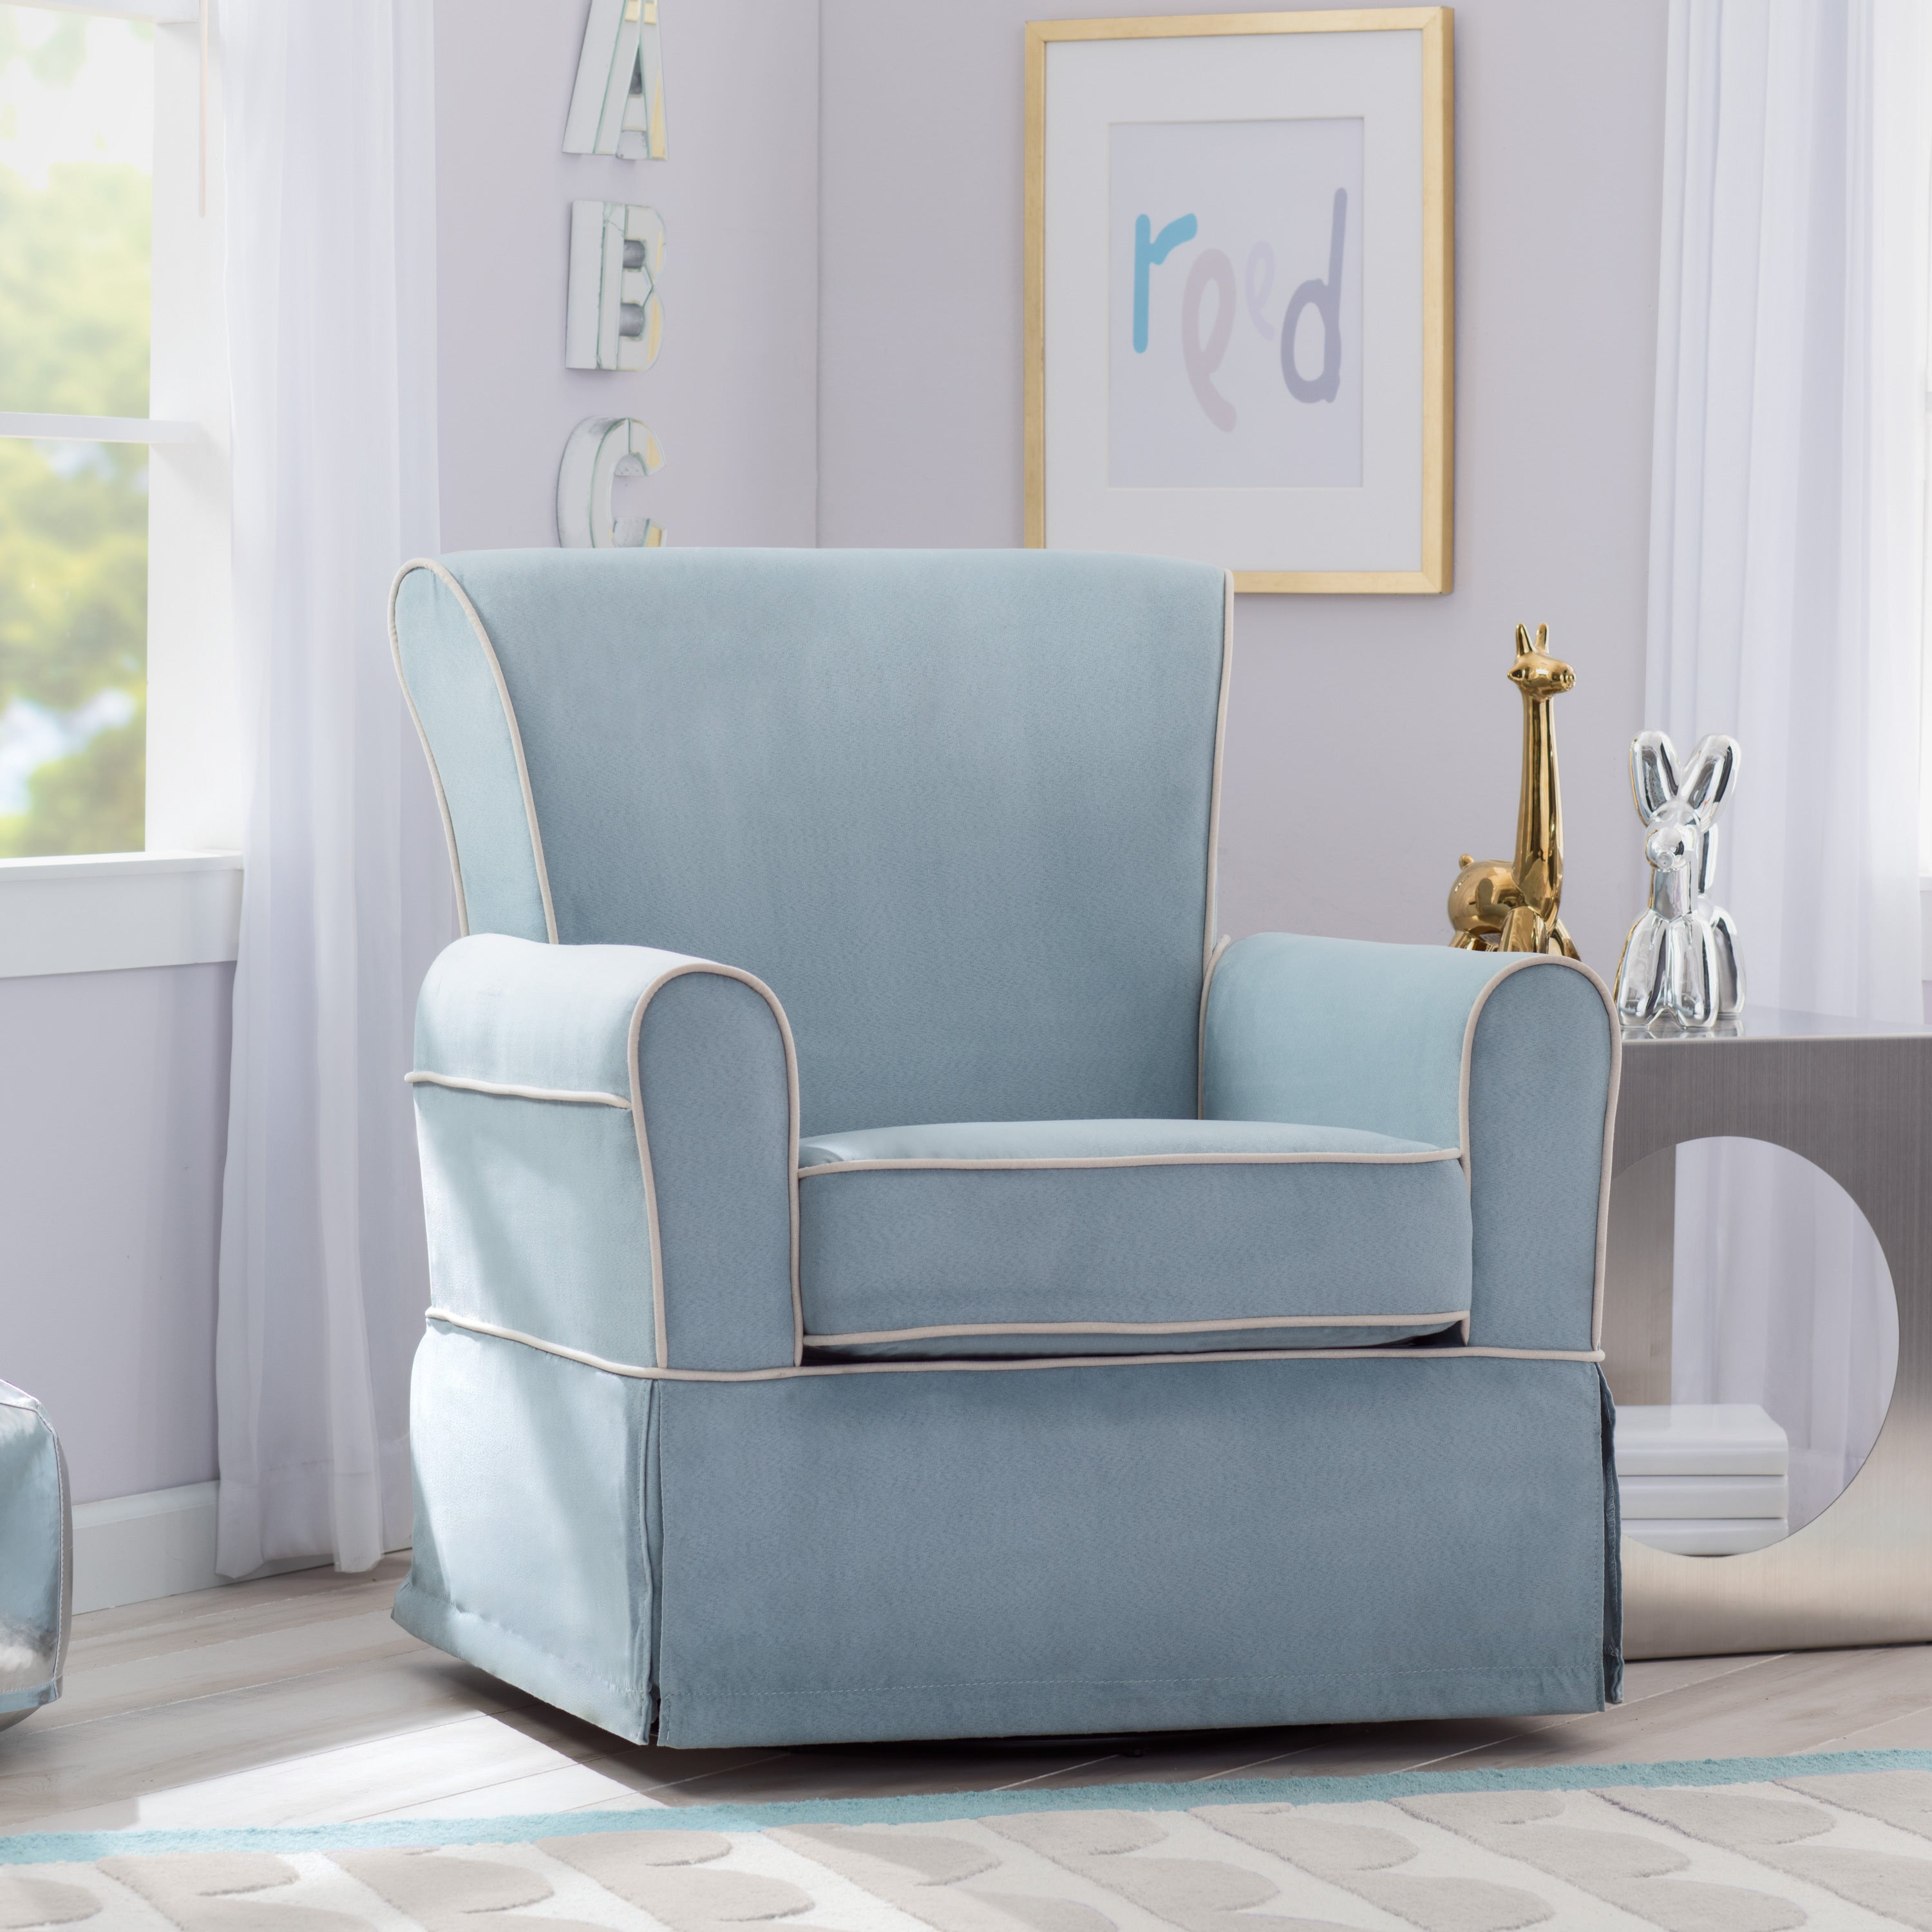 room elegant livings living beautiful related outdoor chairs stranraerfcshop new furniture of chair post swivel best download rocking metal for lovely